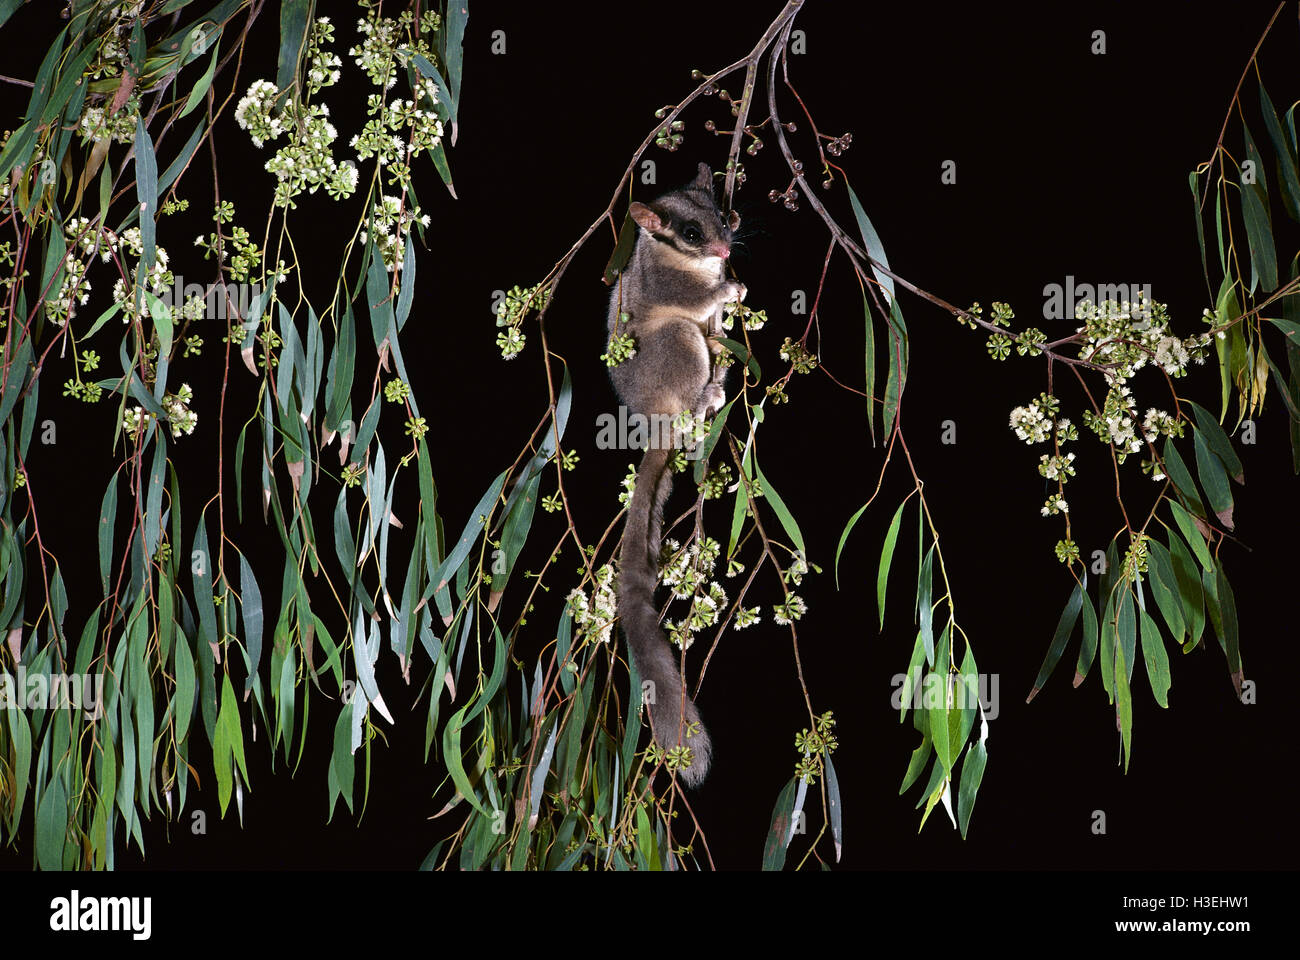 Leadbeater's possum (Gymnobelideus leadbeateri) in a flowering eucalypt tree at night, endangered species. Central Stock Photo